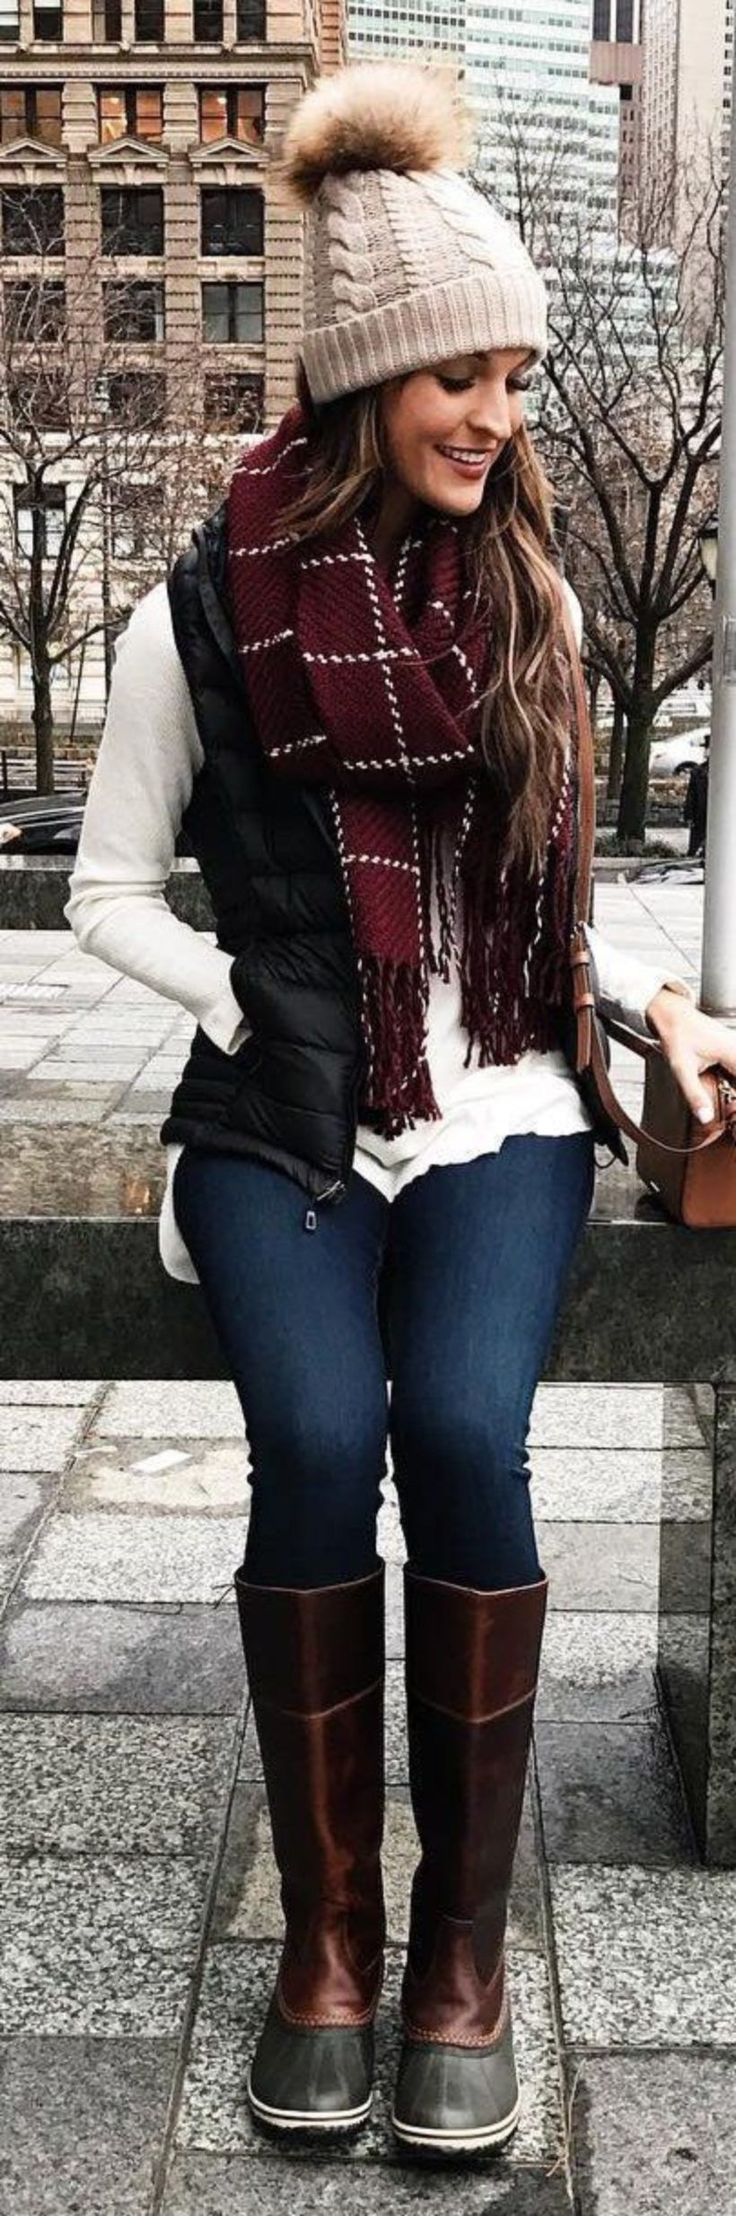 Best winter outfit ideas to copy right now 15 - Fashionetter